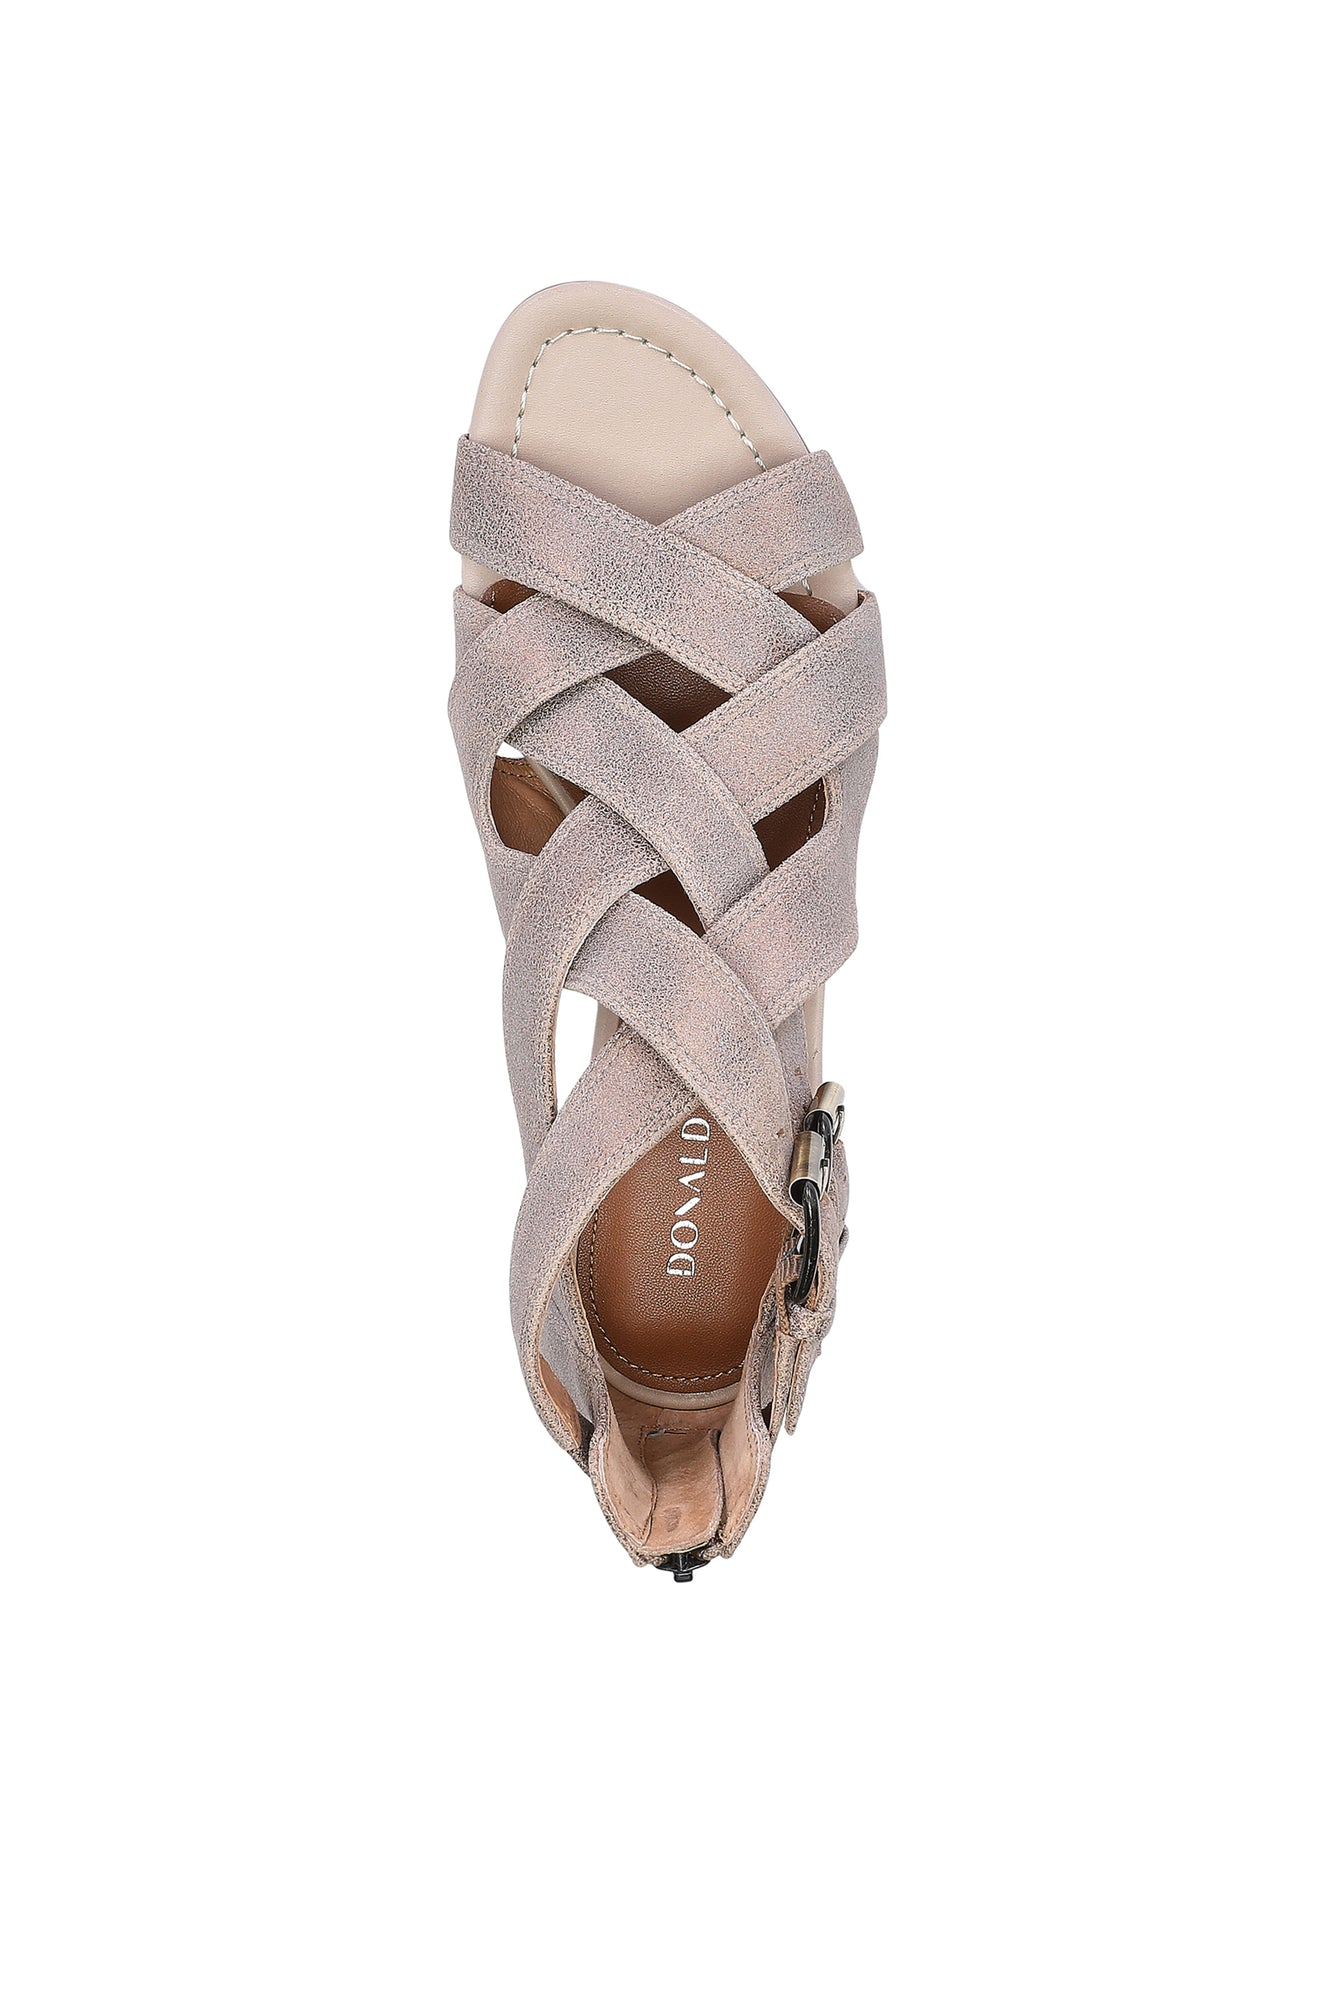 Valencia Tumbled Metallic Brush off Sandal - Light Bronze